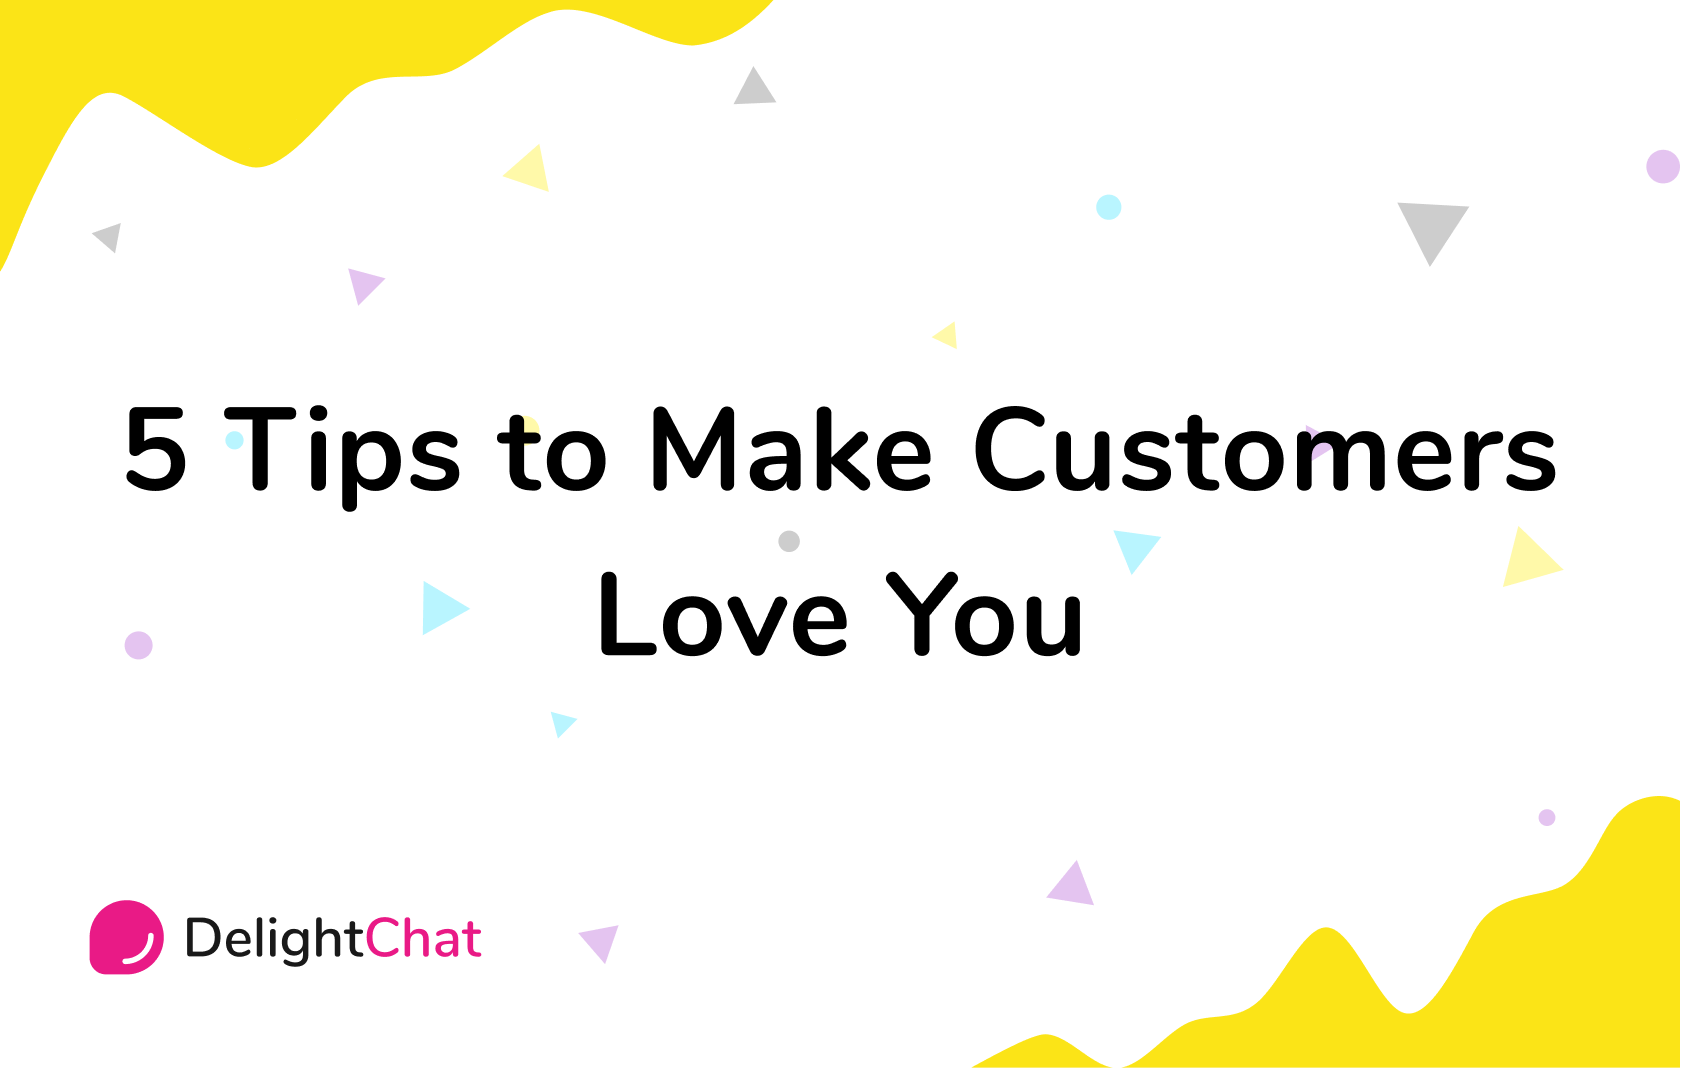 Ecommerce Customer Service: 5 Tips to Make Customers Love You